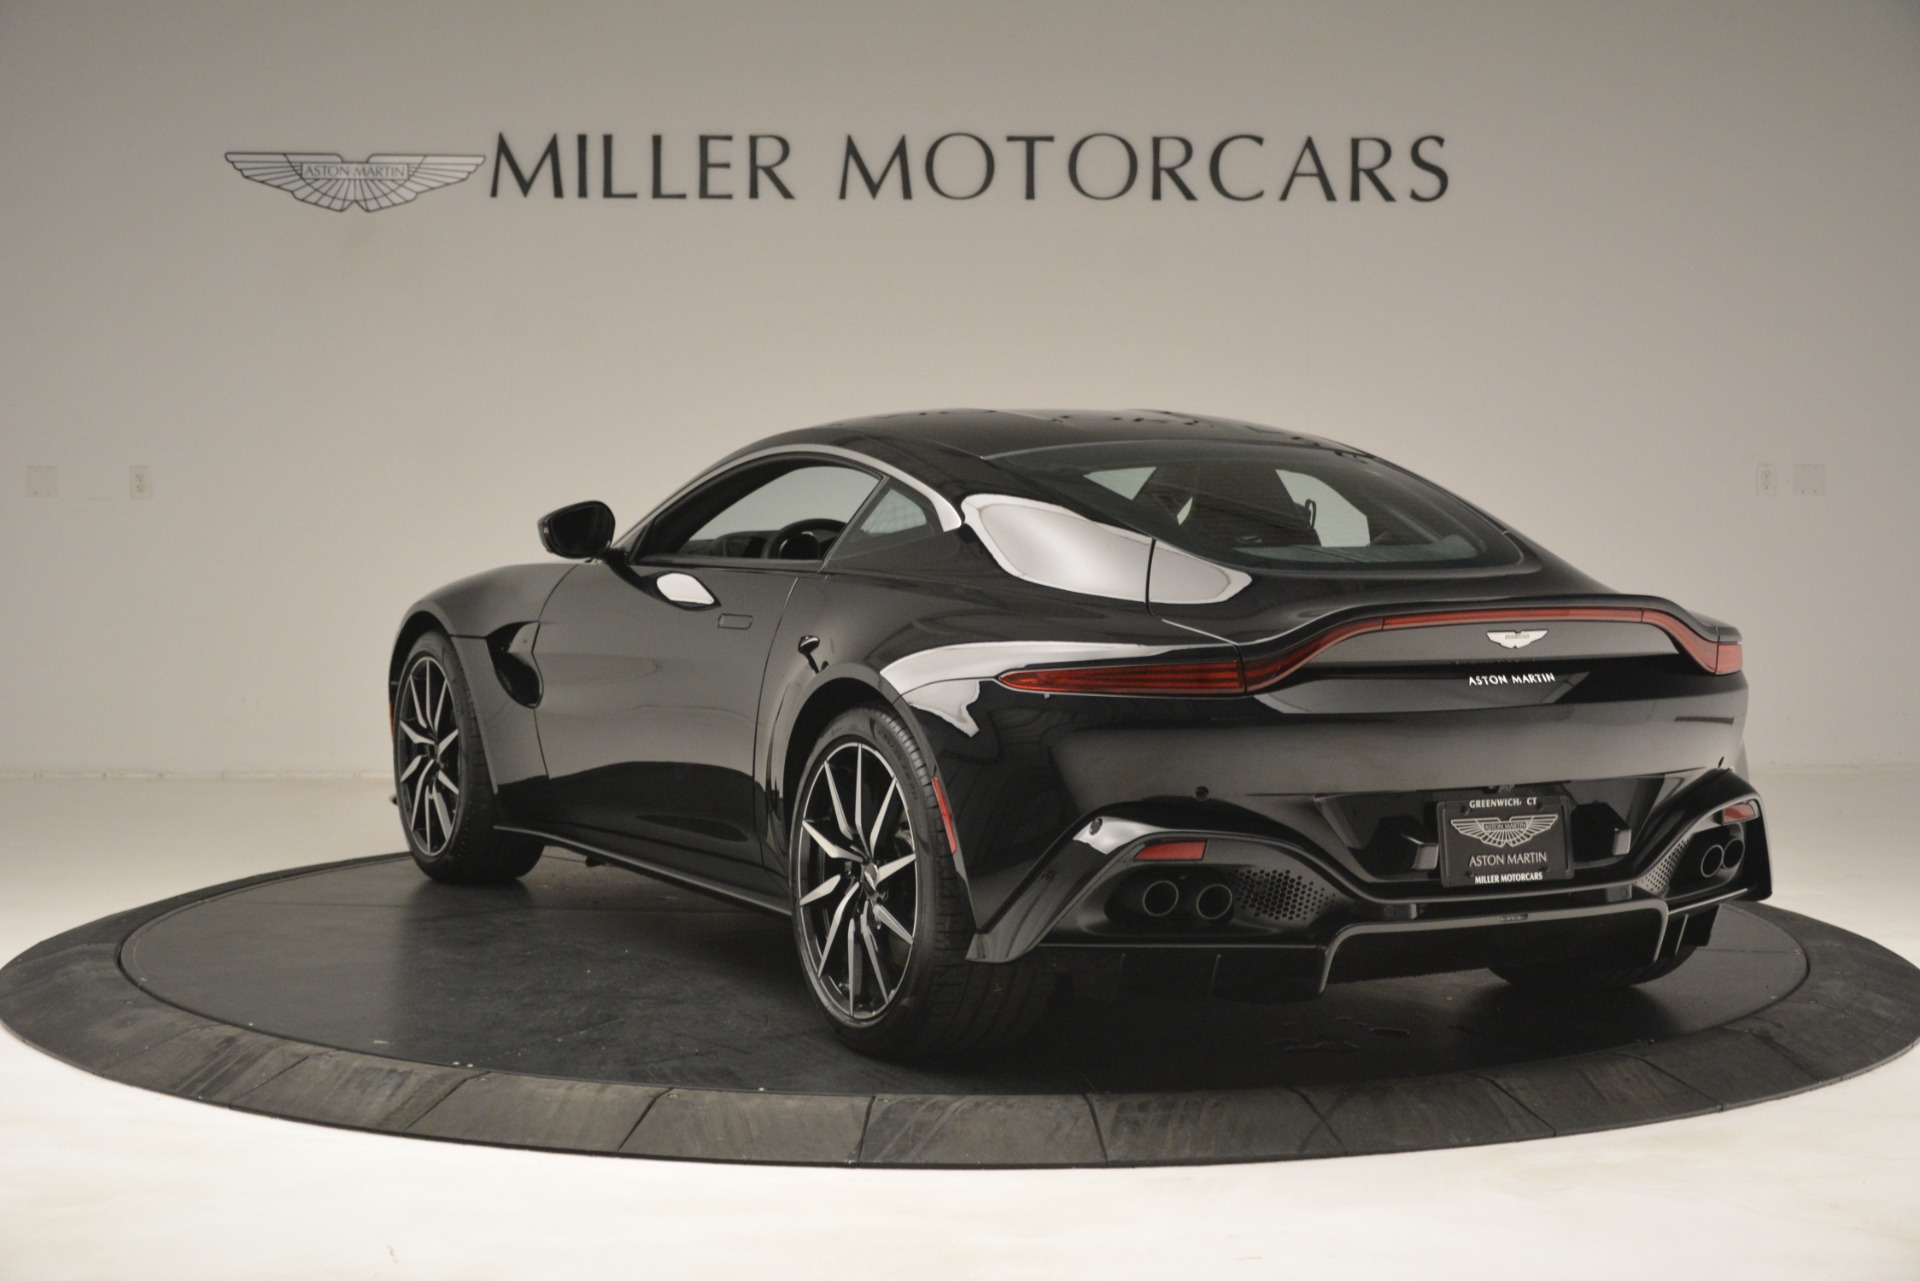 New 2019 Aston Martin Vantage V8 For Sale In Greenwich, CT 3124_p5